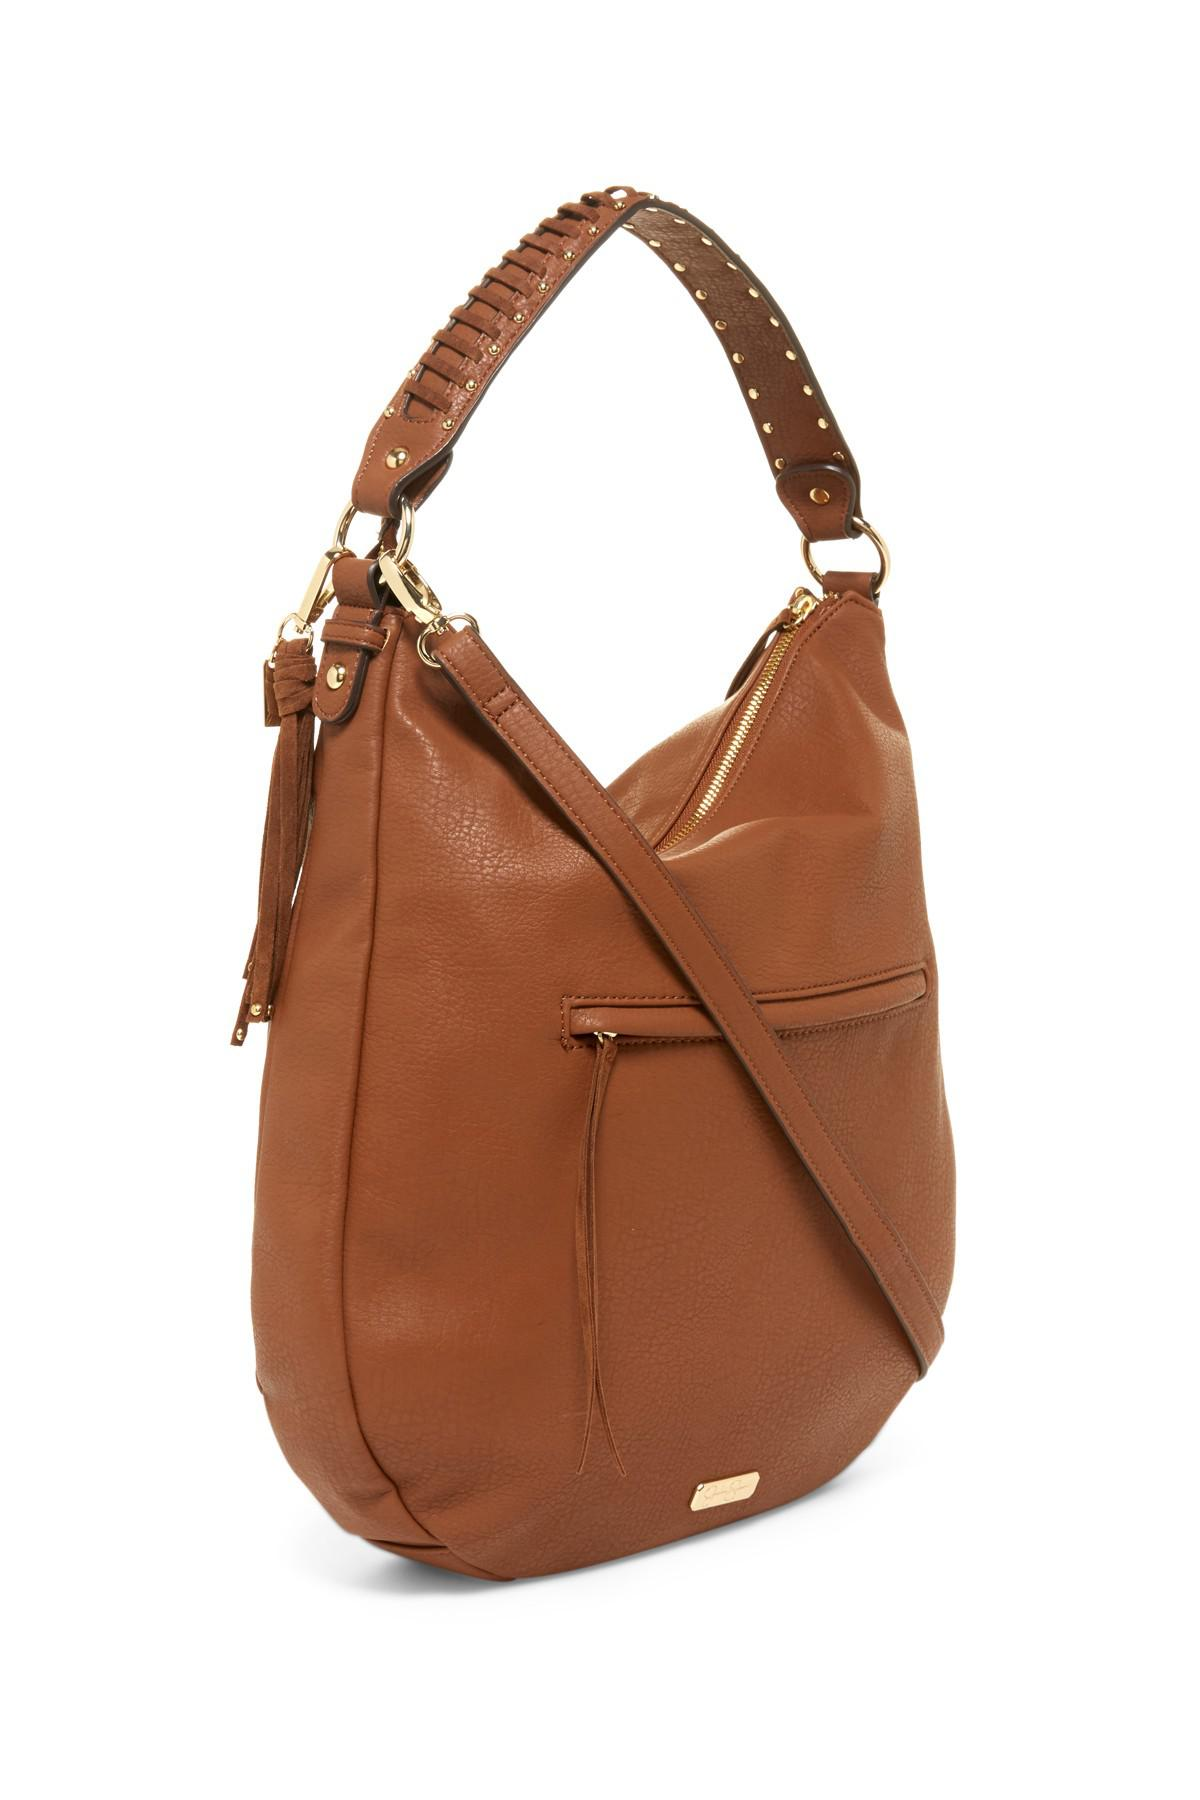 Lyst - Jessica Simpson Angie Shoulder Bag Hobo in Brown f0cf2137ef745